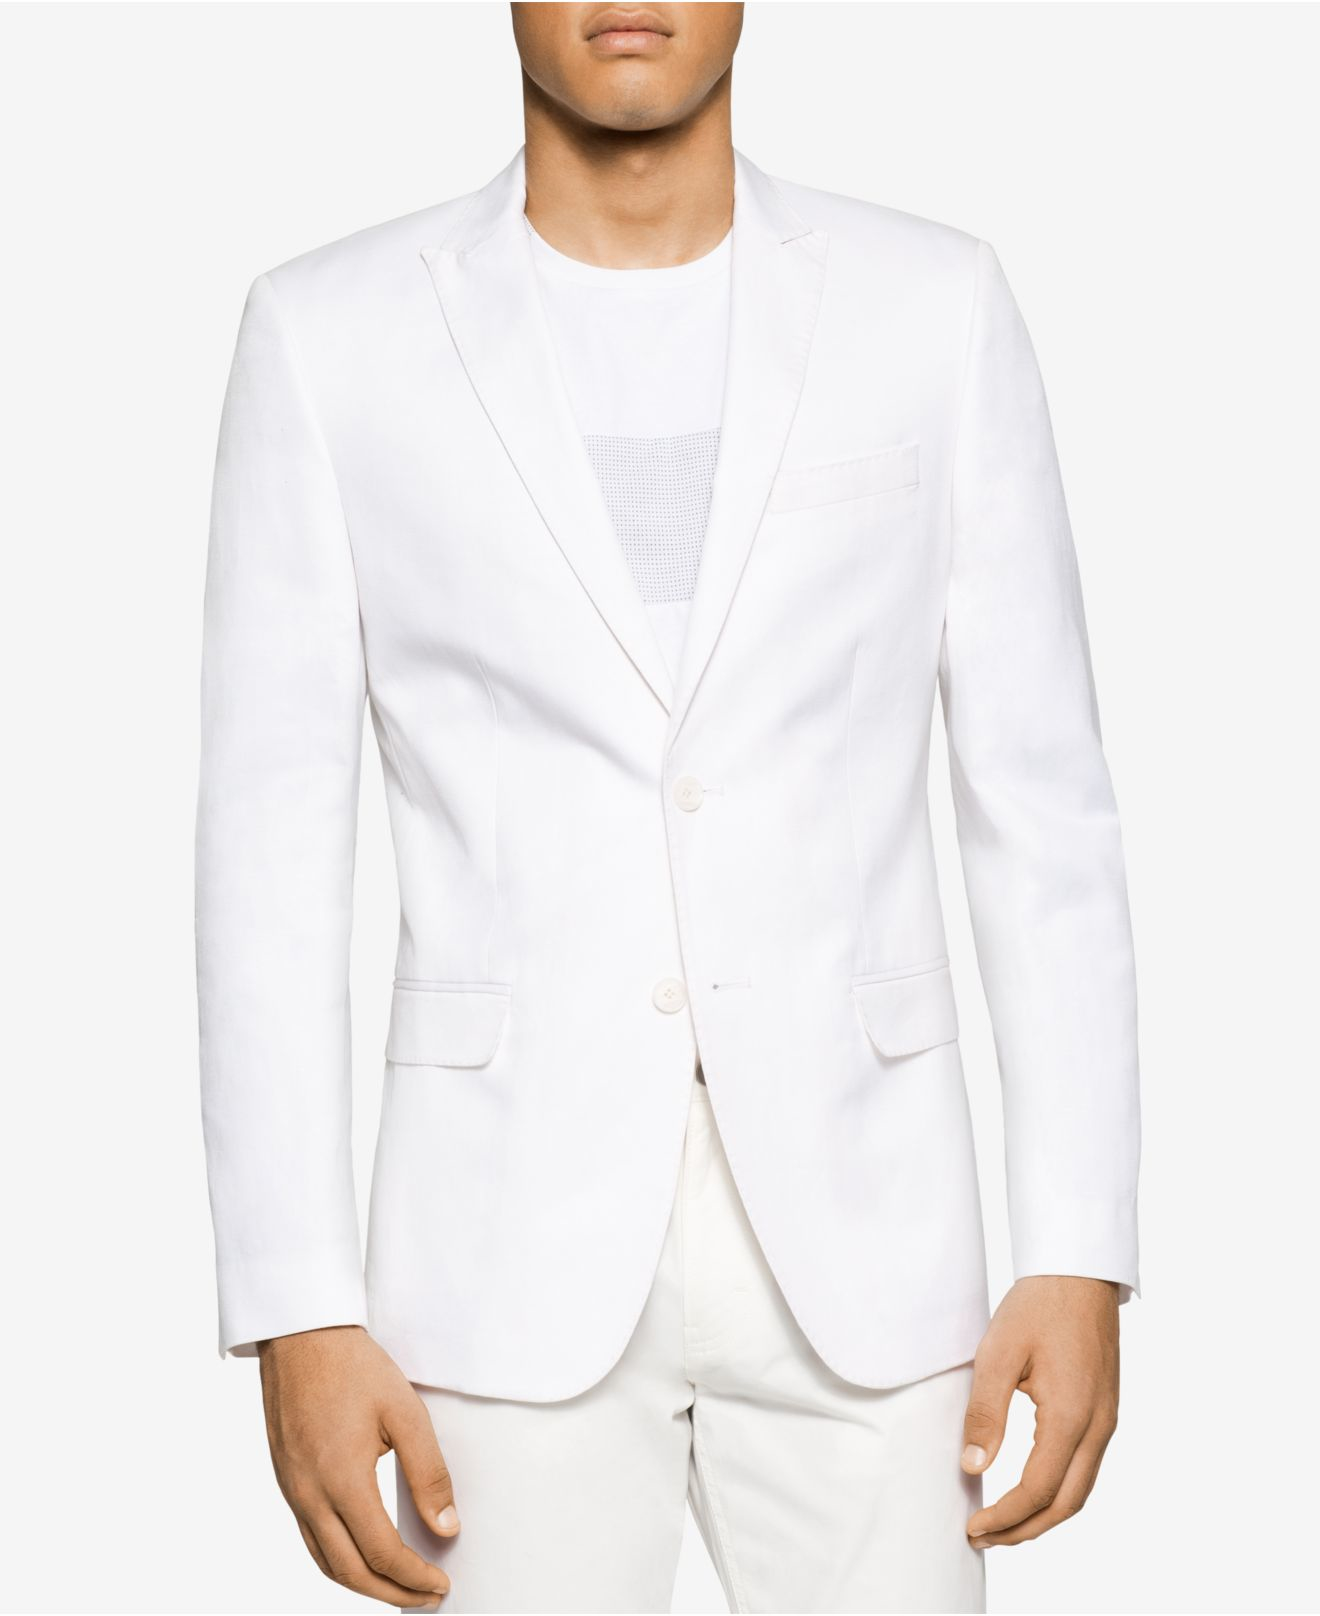 The slim fit suits with slim fit dress pants works best for the average body, while a classic fit suit is better for broader body types. Skinny suits are great accents for taller and slim shopnew-5uel8qry.cf suit speaks through its color and style.